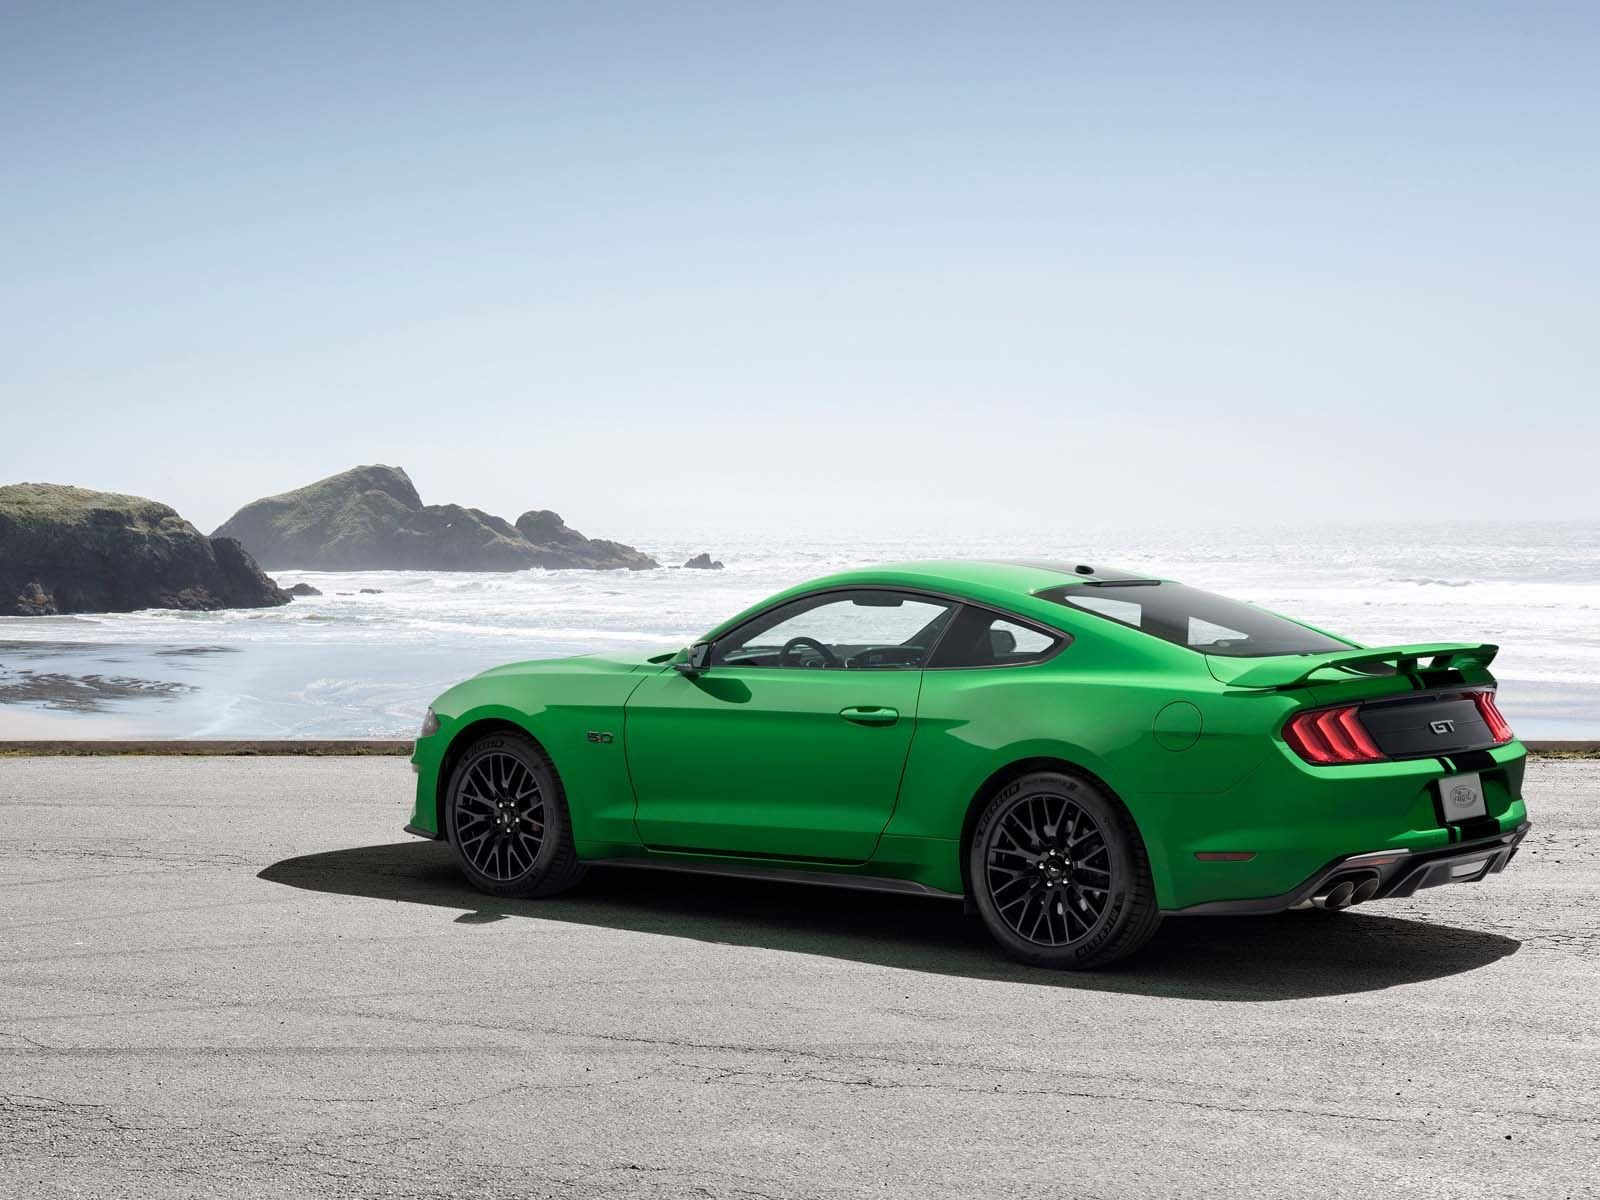 Ford attempts to return snakes to ireland with green mustang for st paddys